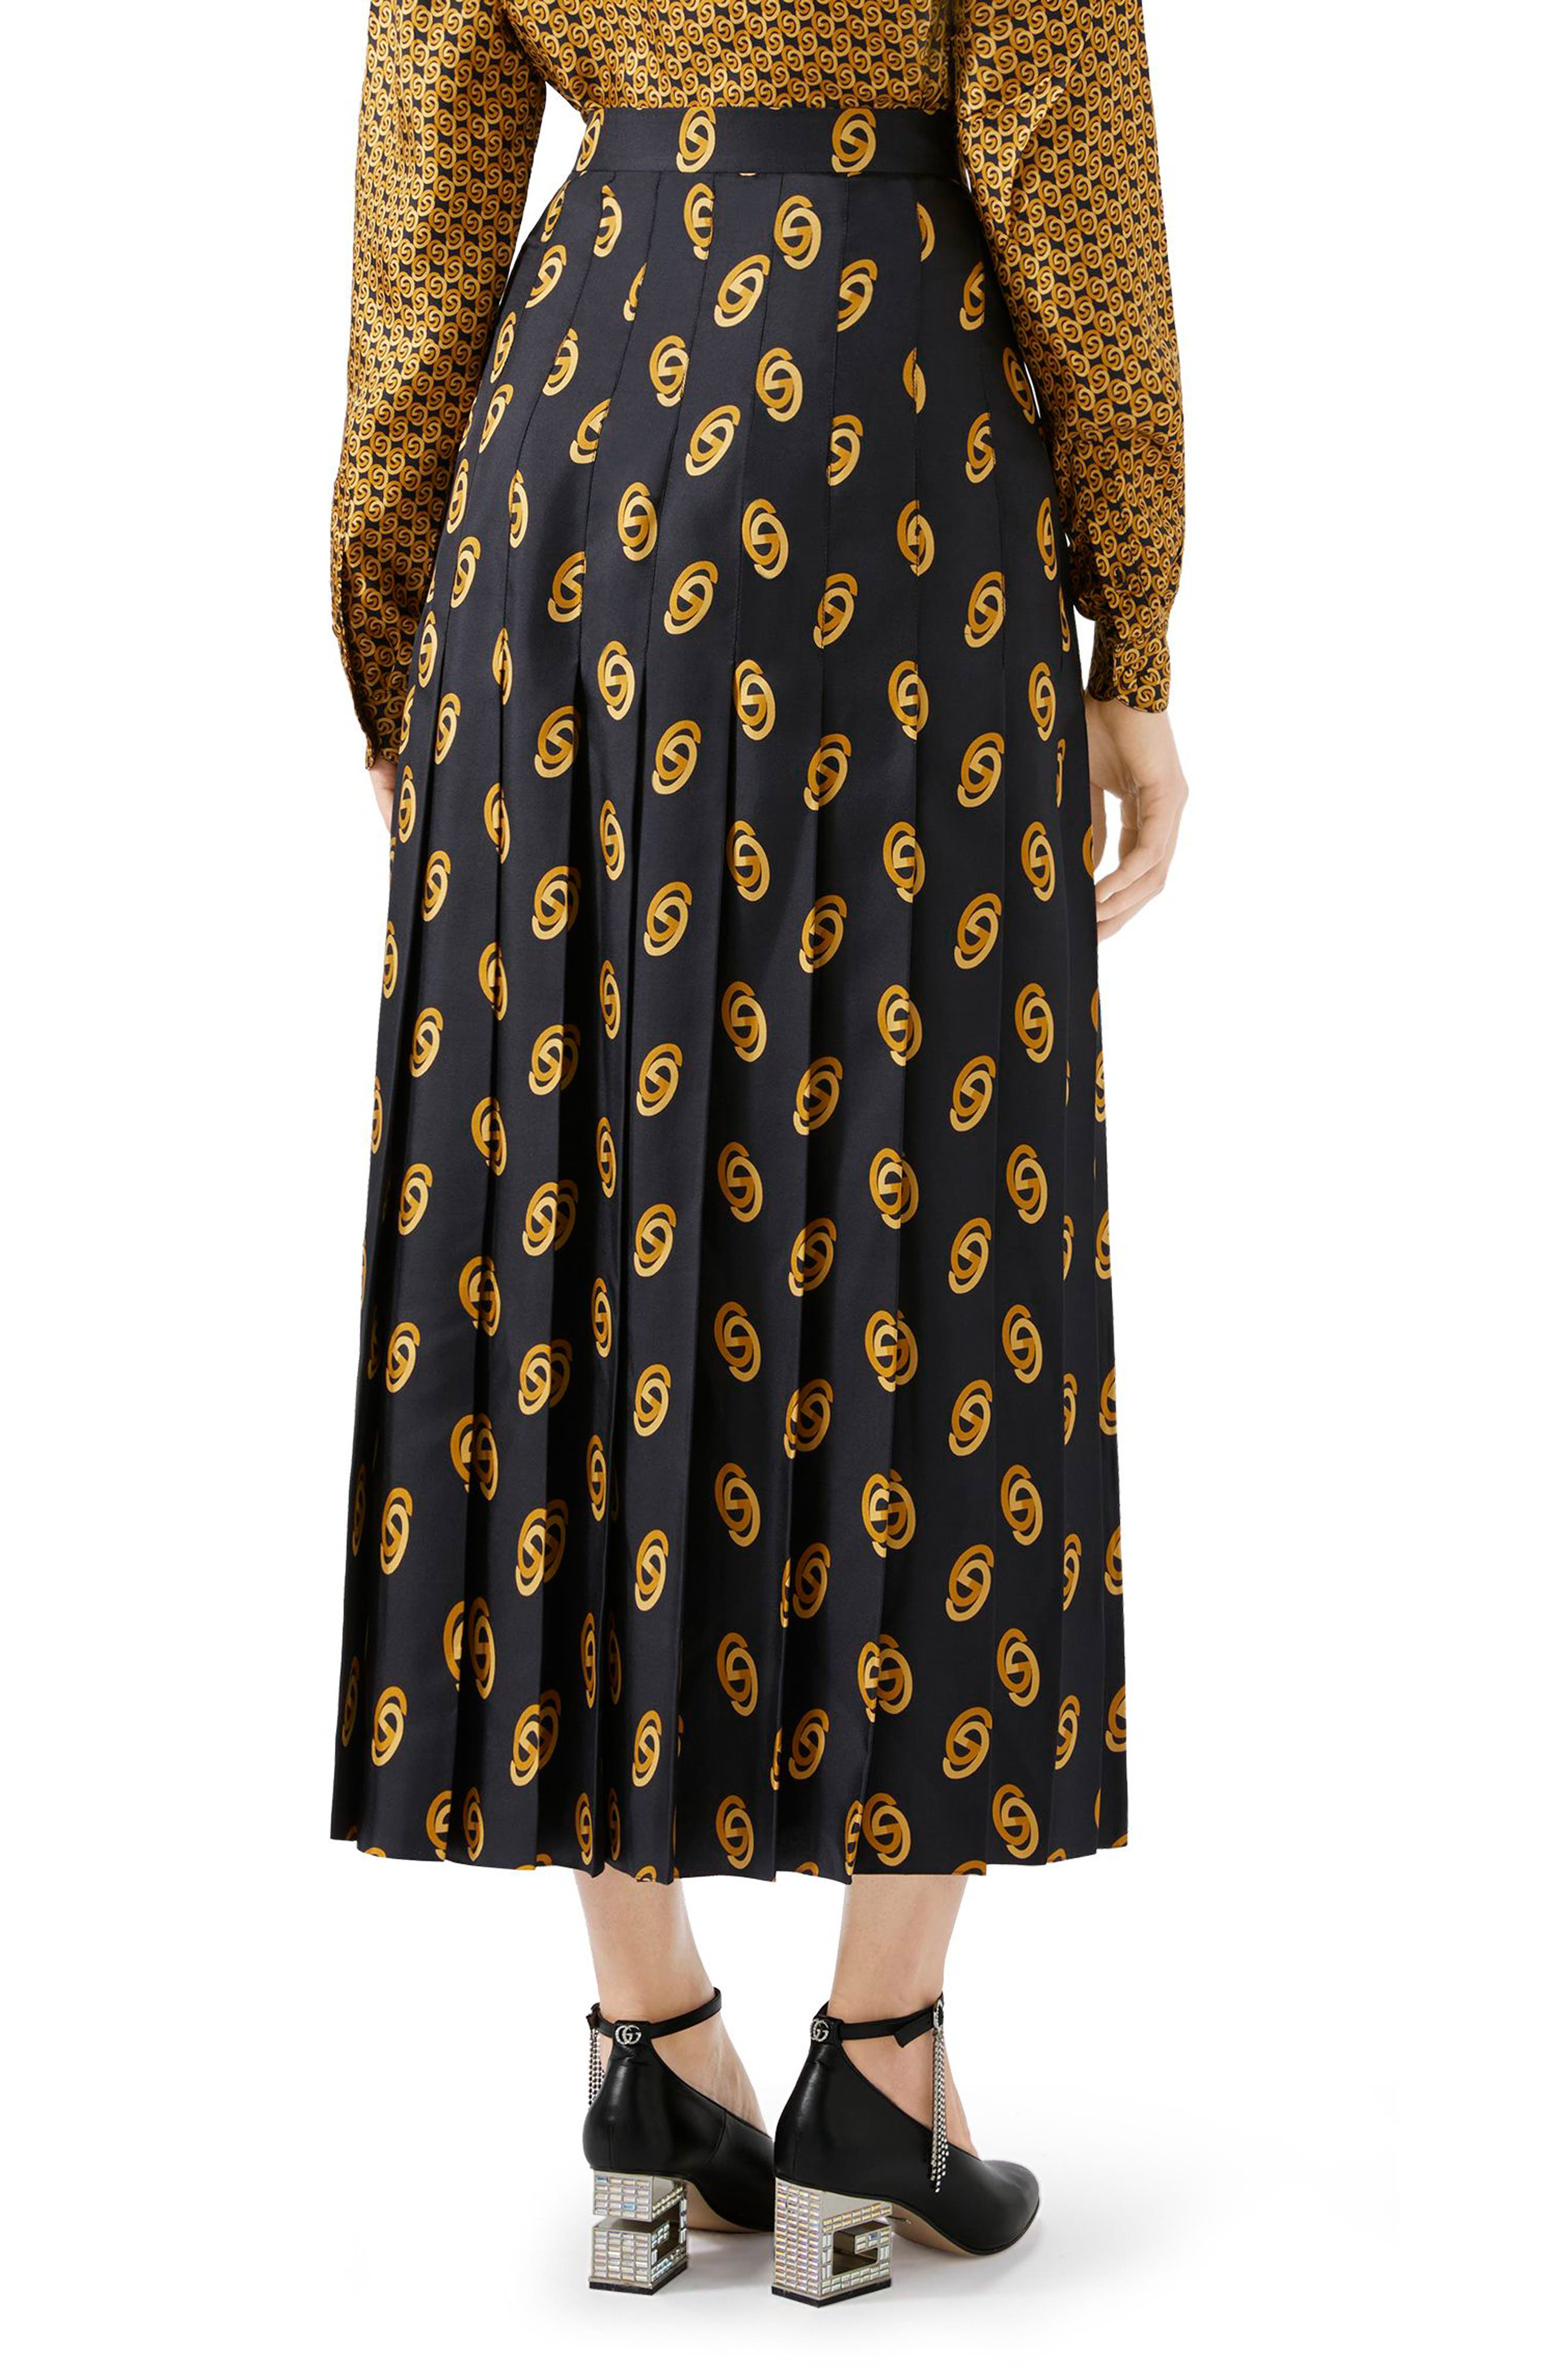 GUCCI,                             Pleated GG Silk Twill Skirt,                             Alternate thumbnail 2, color,                             1744 BLACK/ GOLD PRINTED